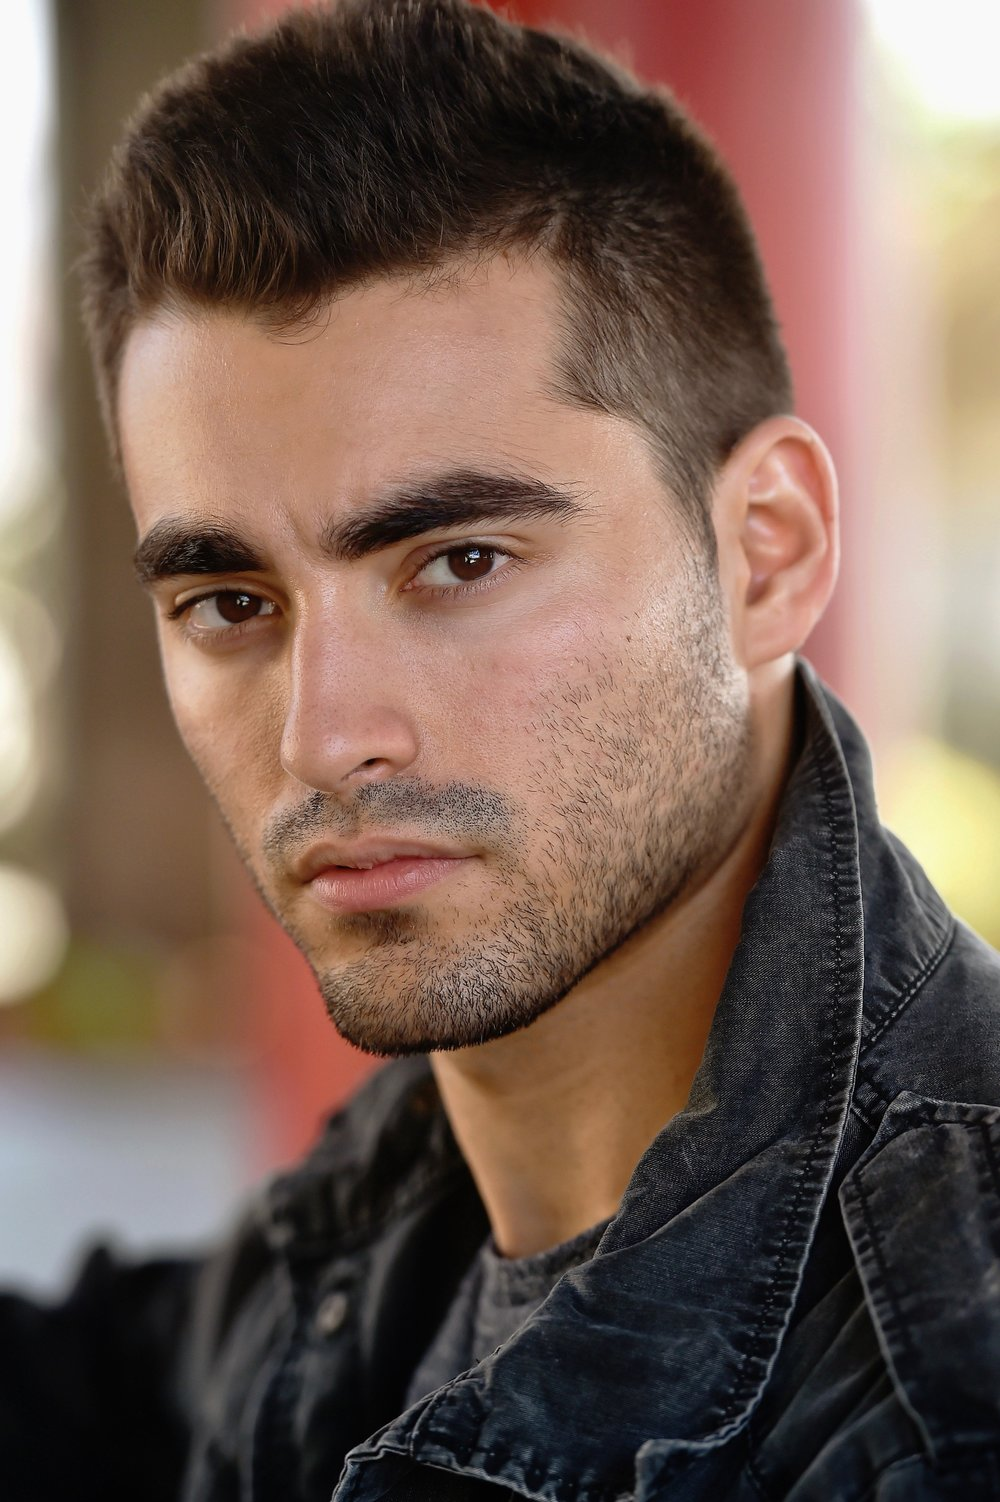 Blake Michael short hair 2018